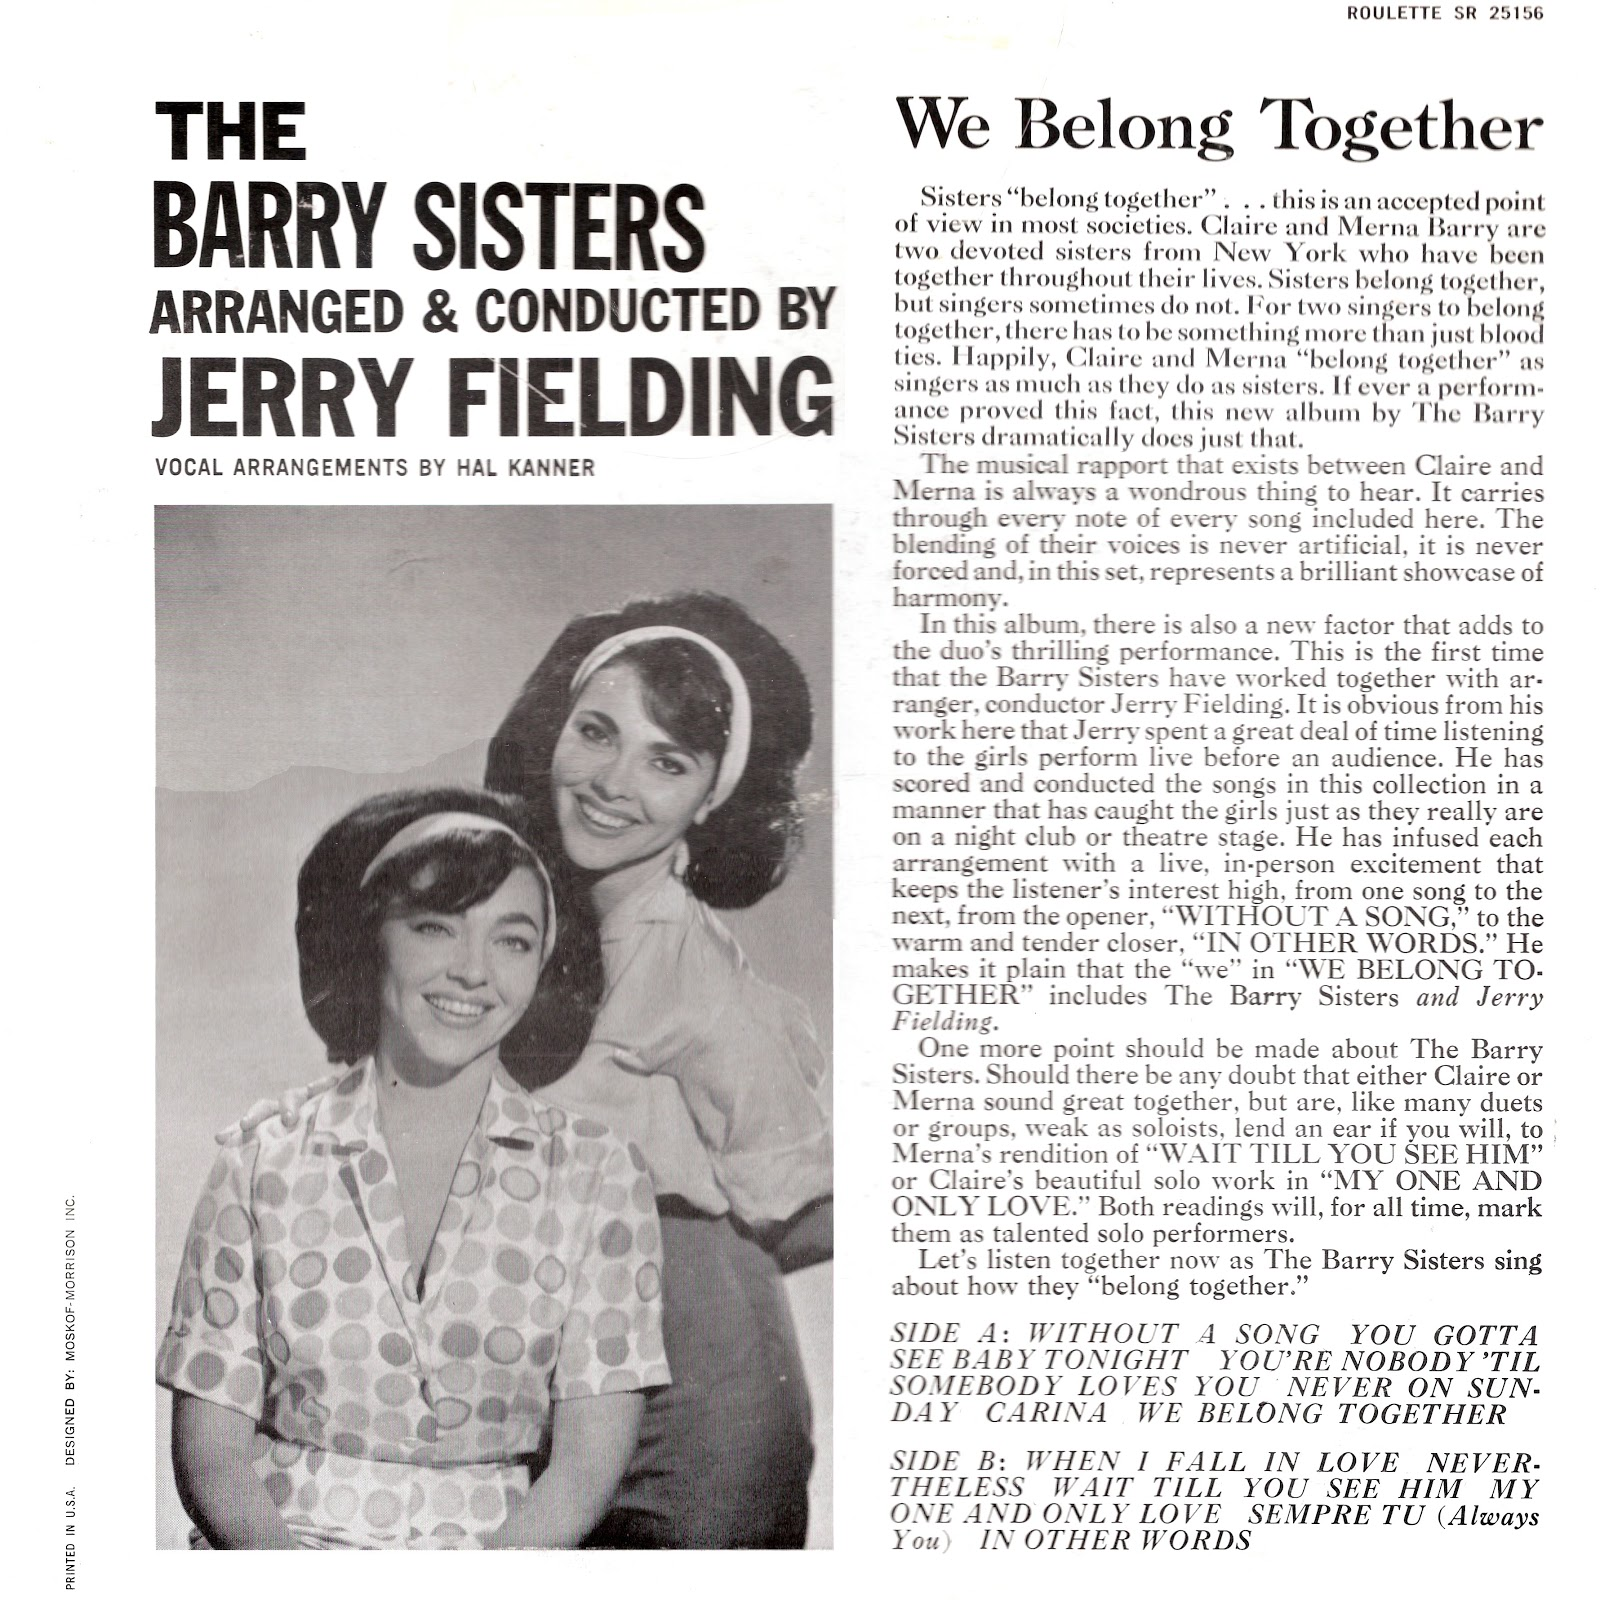 The Barry Sisters - We Belong Together